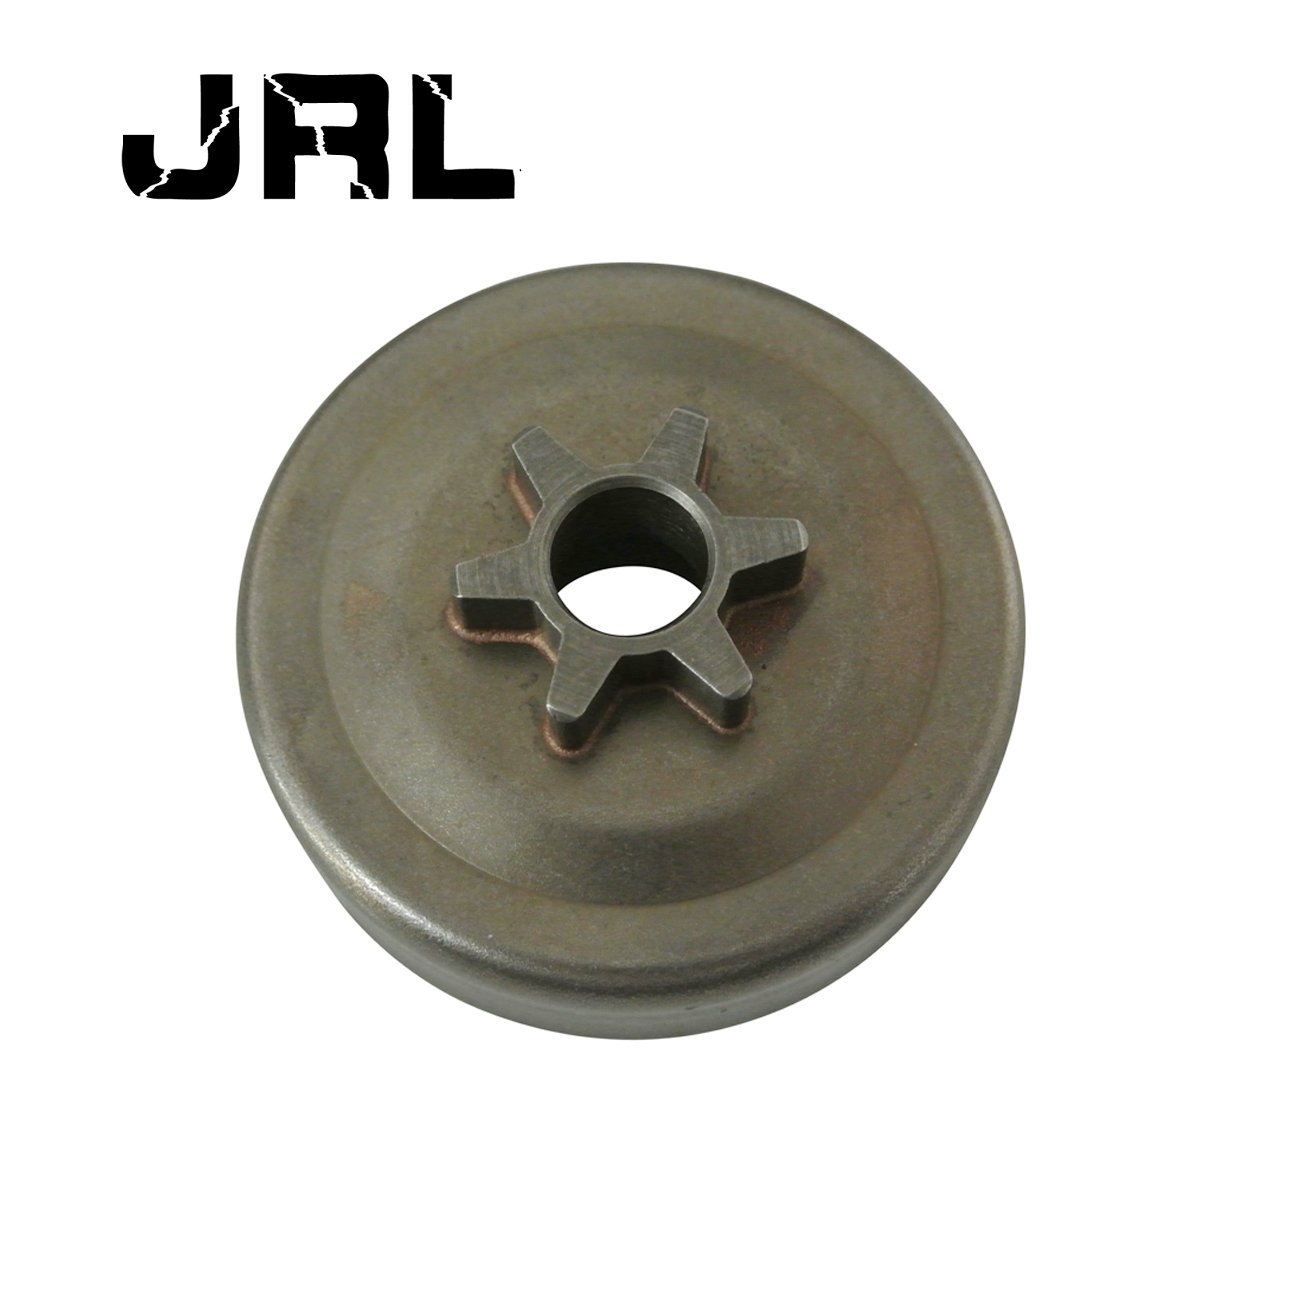 JRL 3/8'- 6T Clutch Drum Chain Sprocket For Stihl 017 018 MS170 MS180 Chainsaw Kanglai Machinery